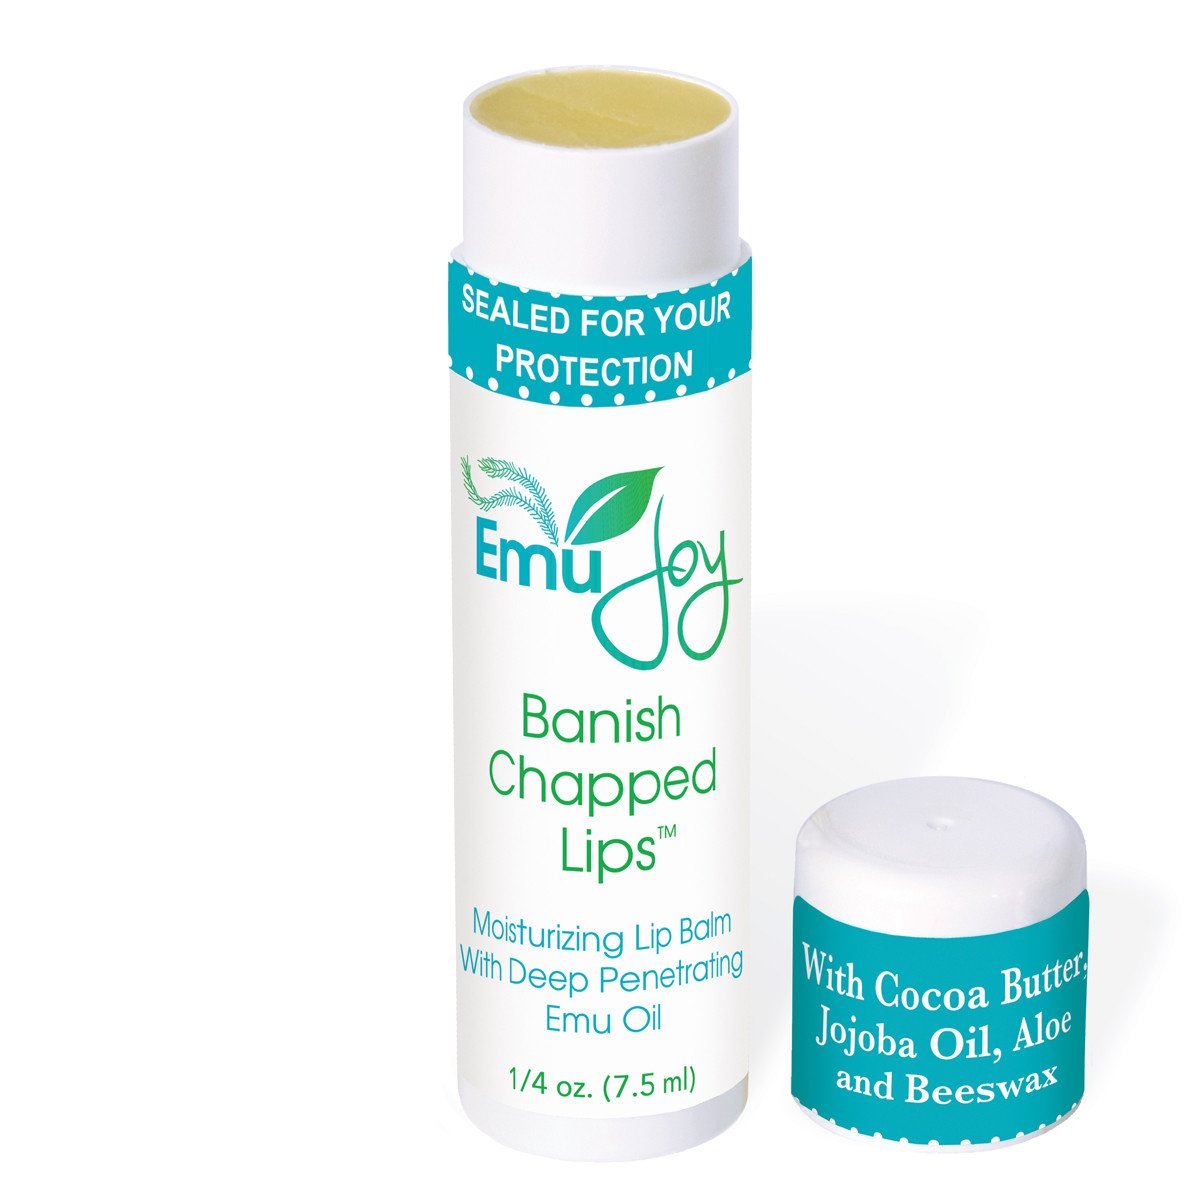 Banish Chapped Lips Emu Oil Lip Balm for Severe Dry Lips Jumbo Tube